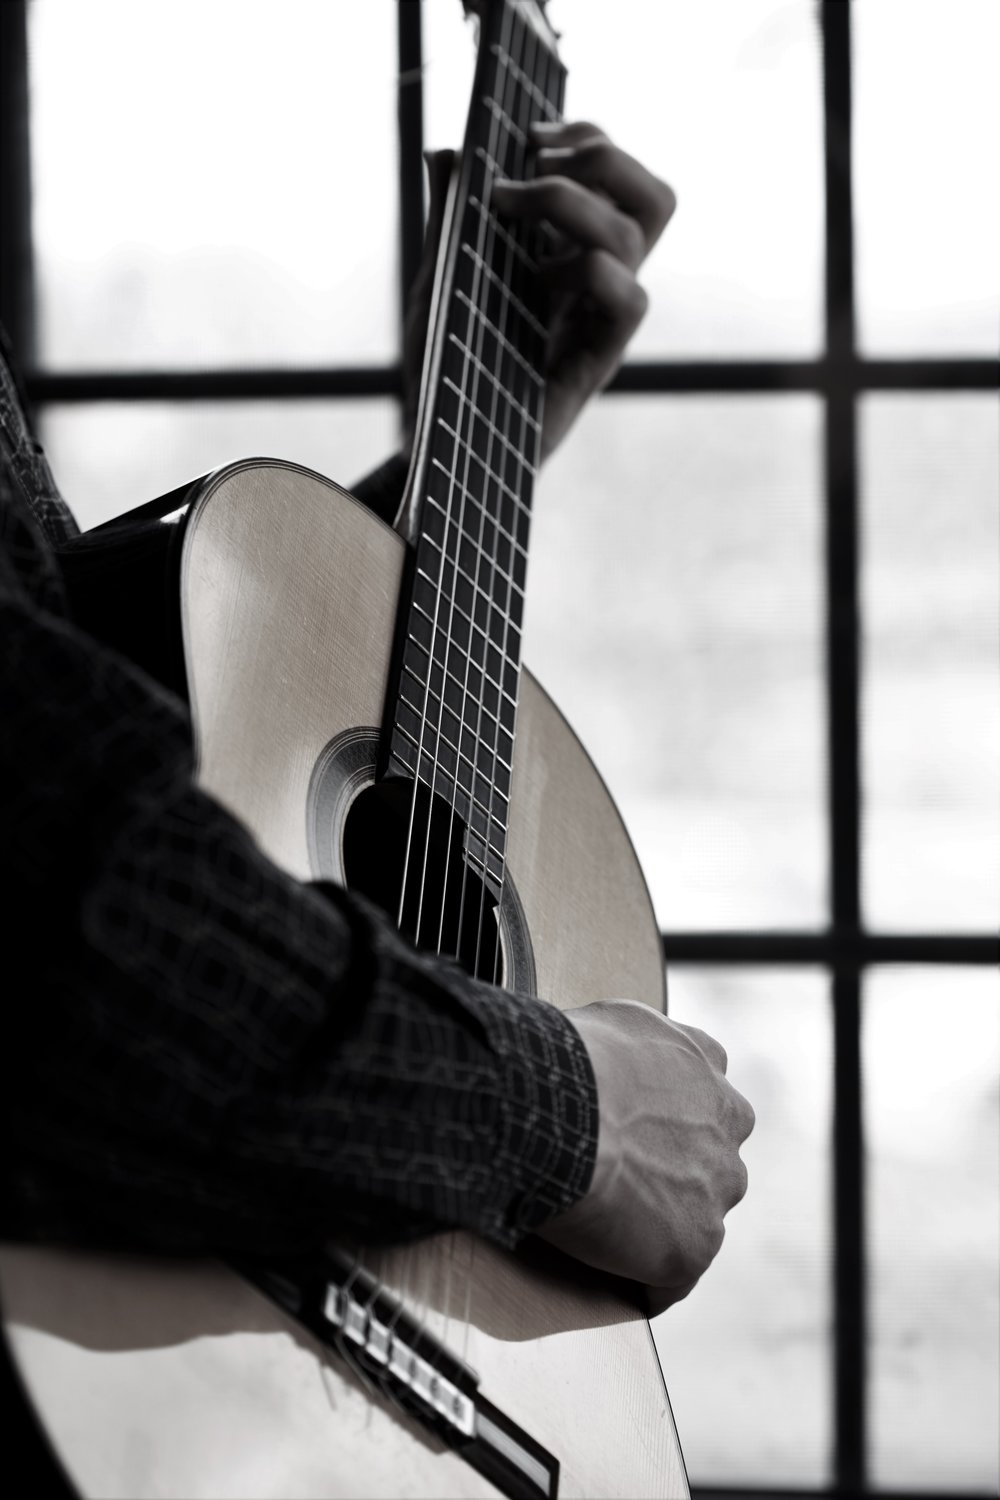 Contact ME - Available for Concerts, Lessons, and Music related events.